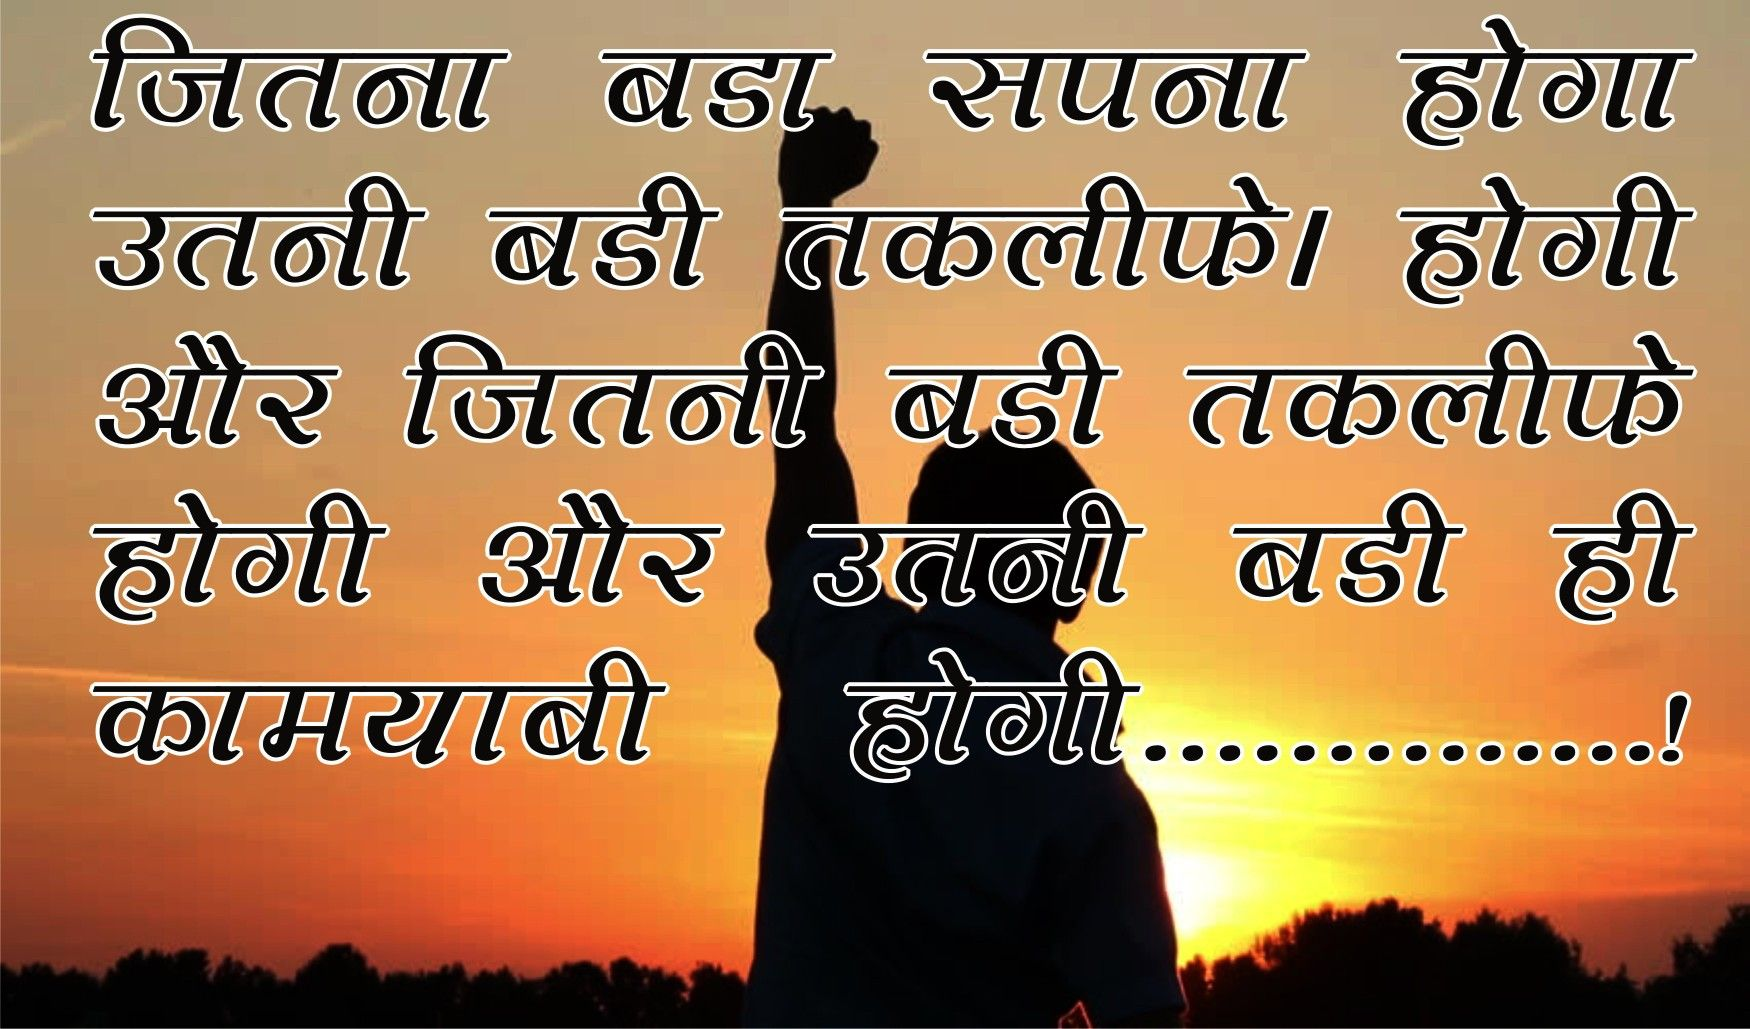 Pin by Ashu Sharma on Good lines for life   Good lines for ...